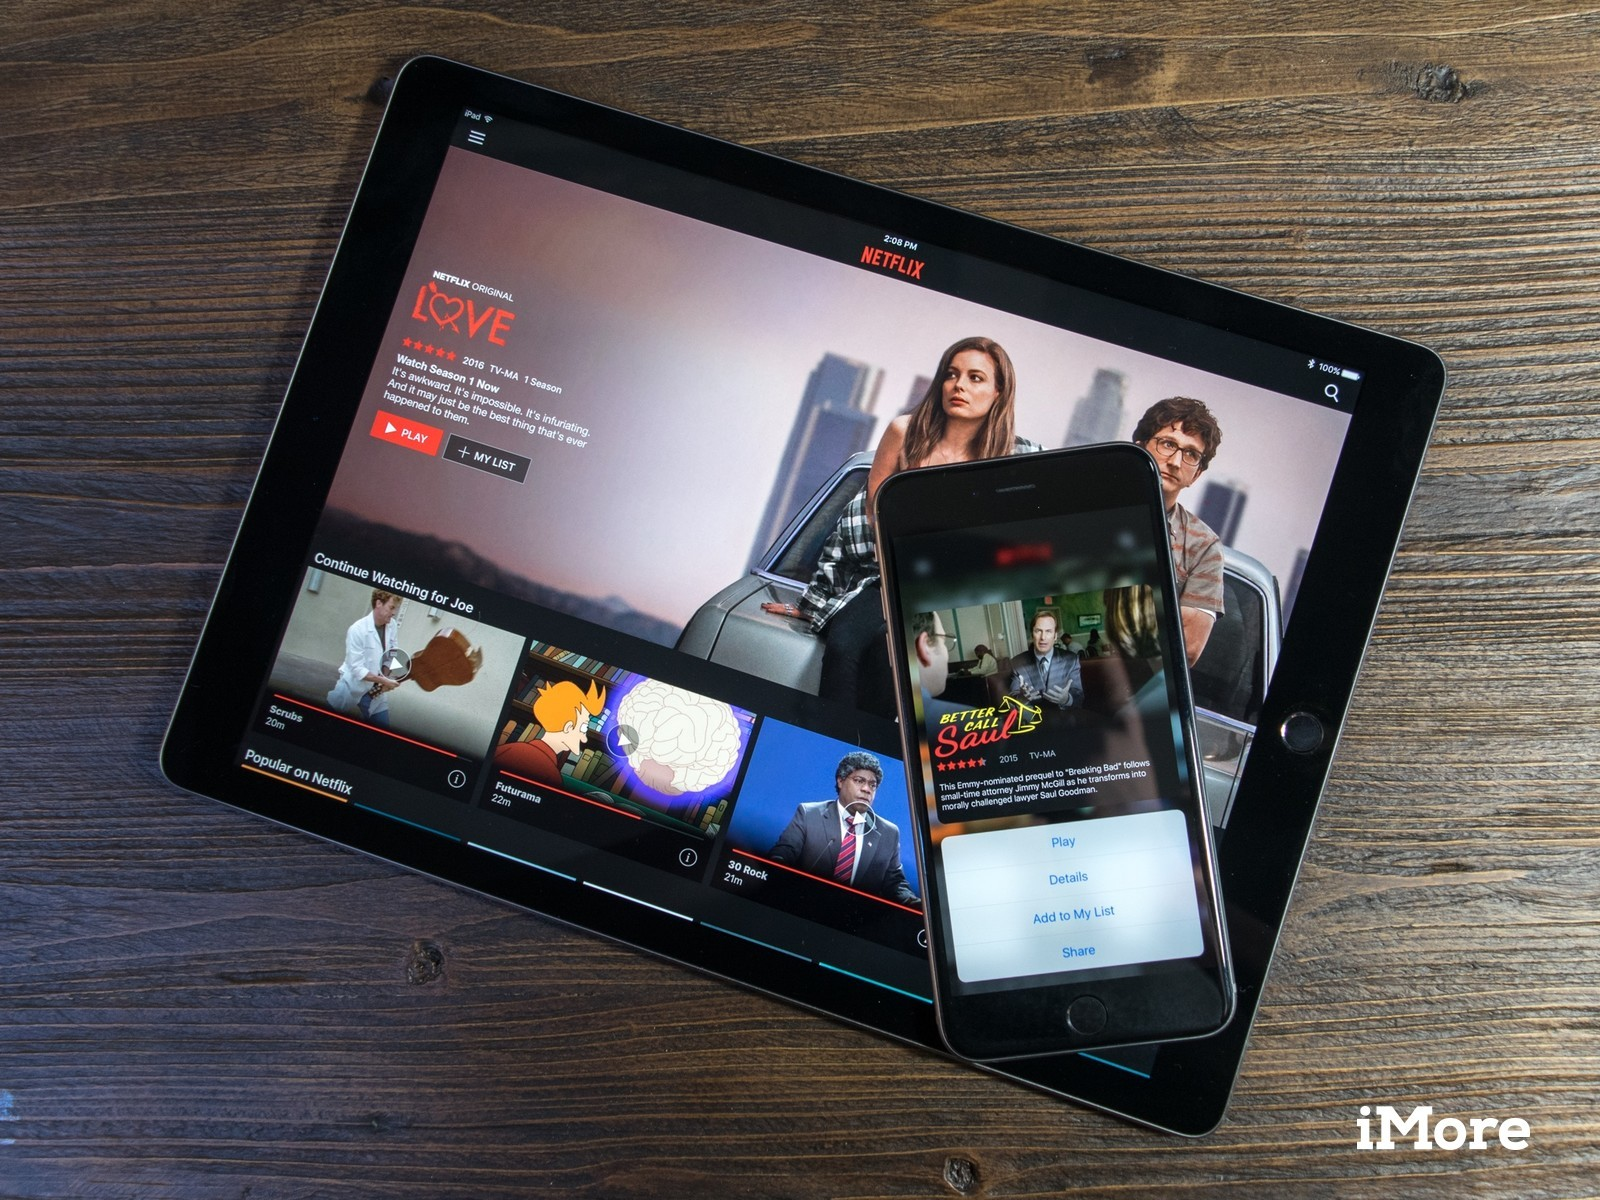 Netflix adds support for 3D Touch and iPad Pro